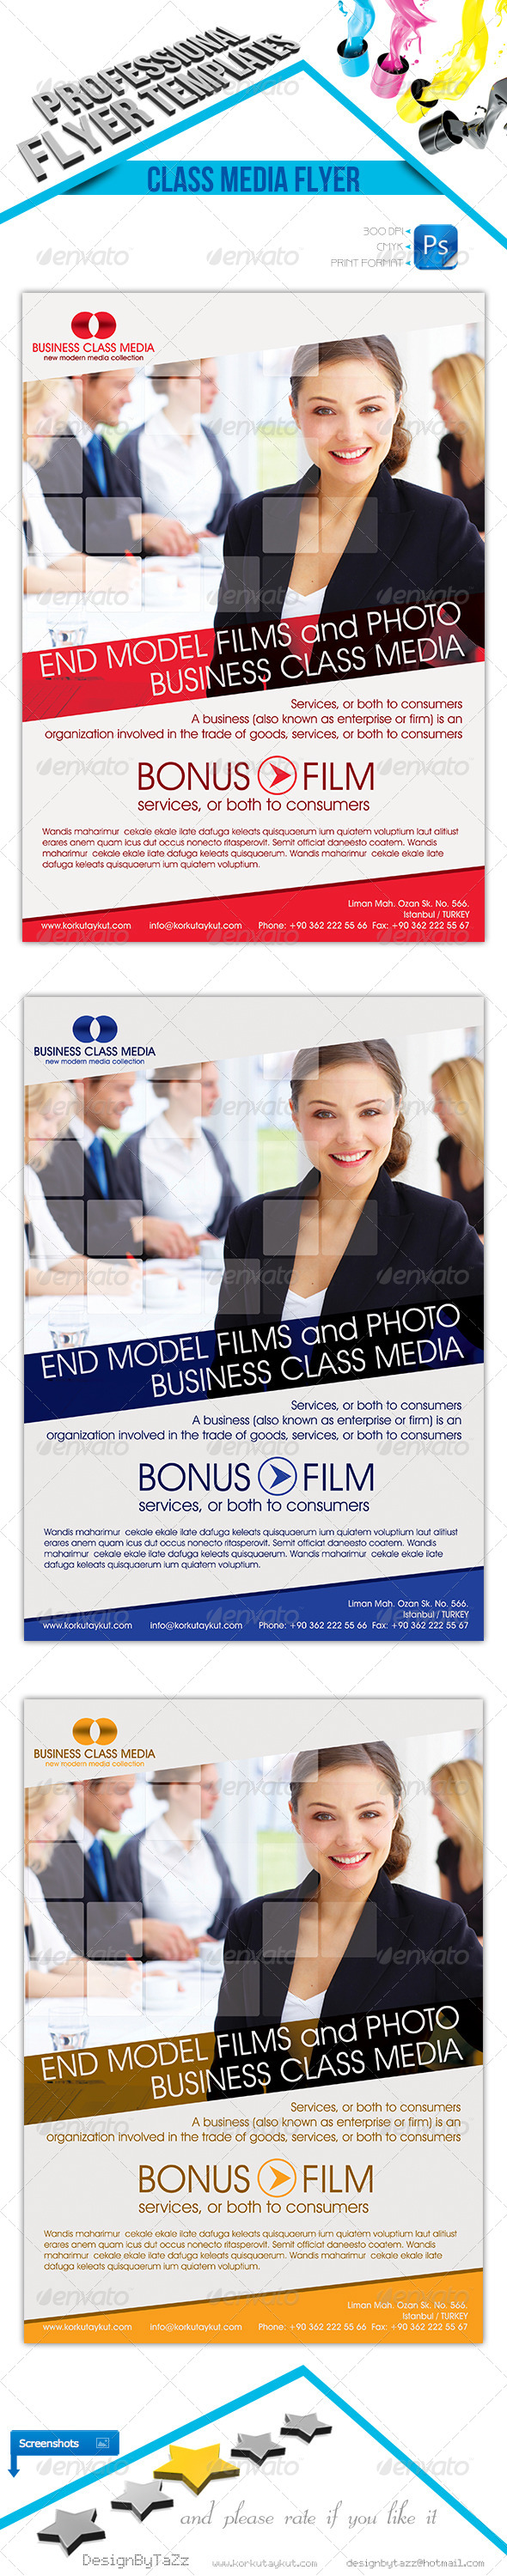 Business Class Media Flyer Template - Corporate Flyers